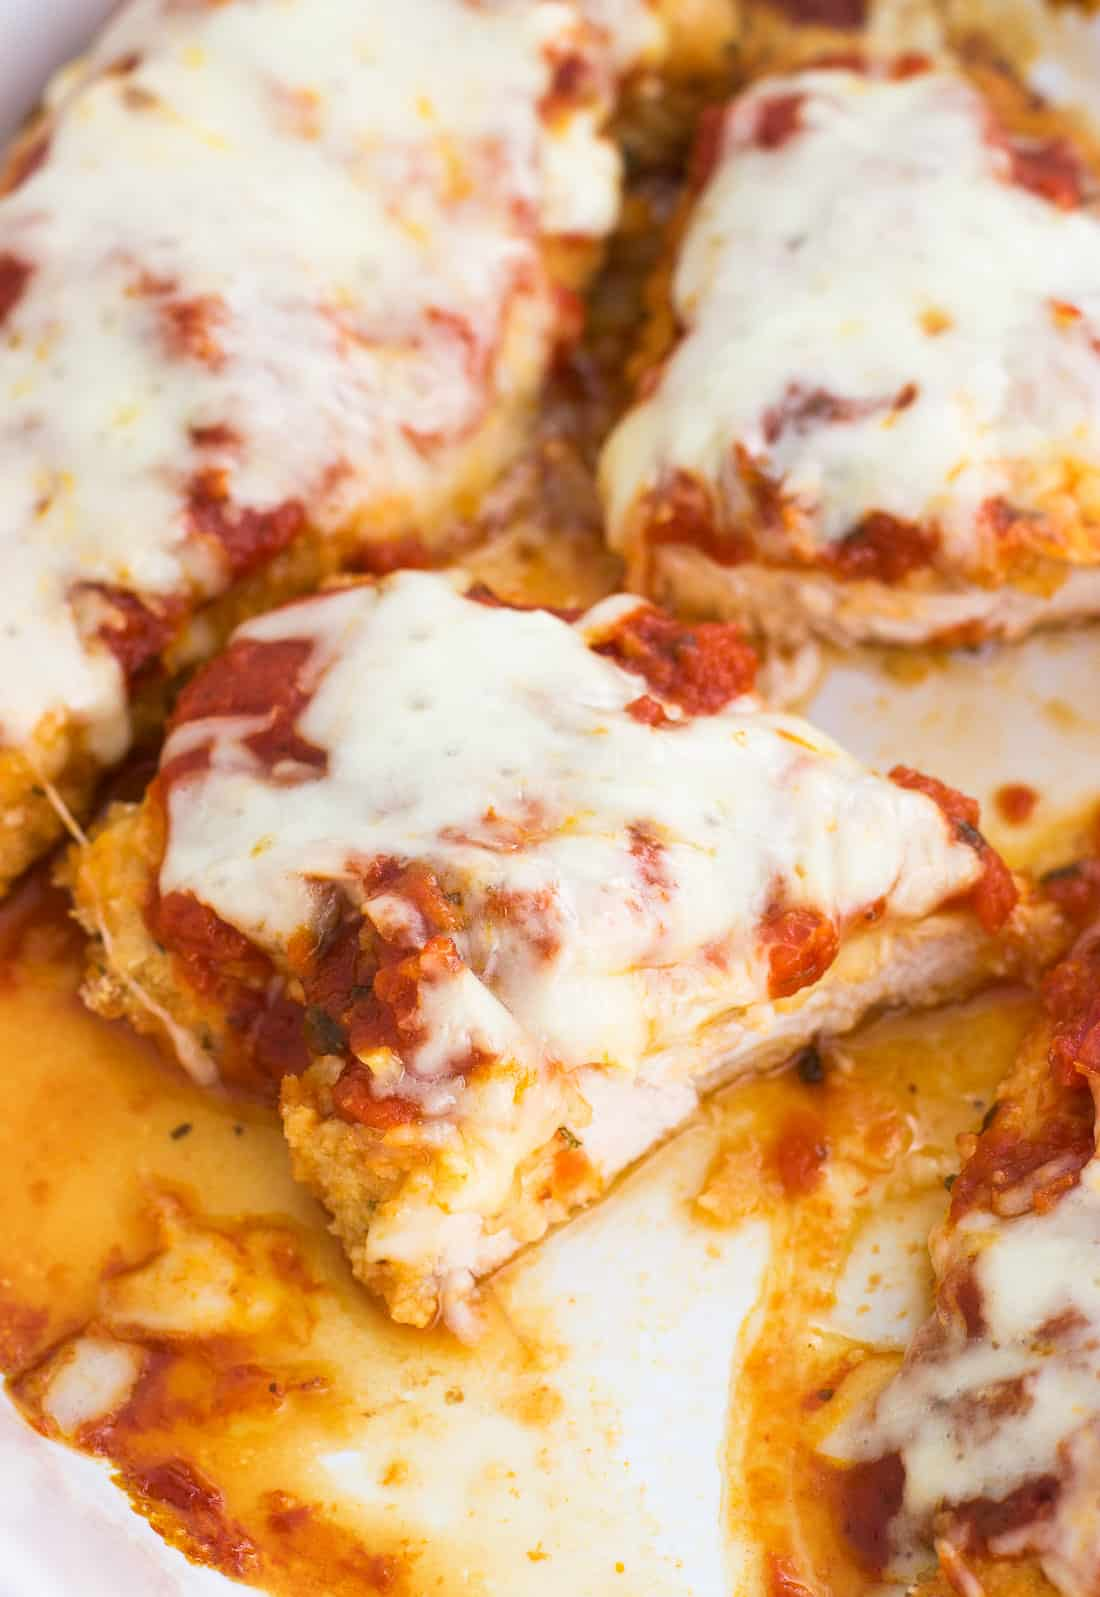 Easy Baked Chicken Parmesan is a quick and satisfying meal made better for you. This healthy chicken parmesan recipe is so simple to put together. It's hard to beat comfort food like this.